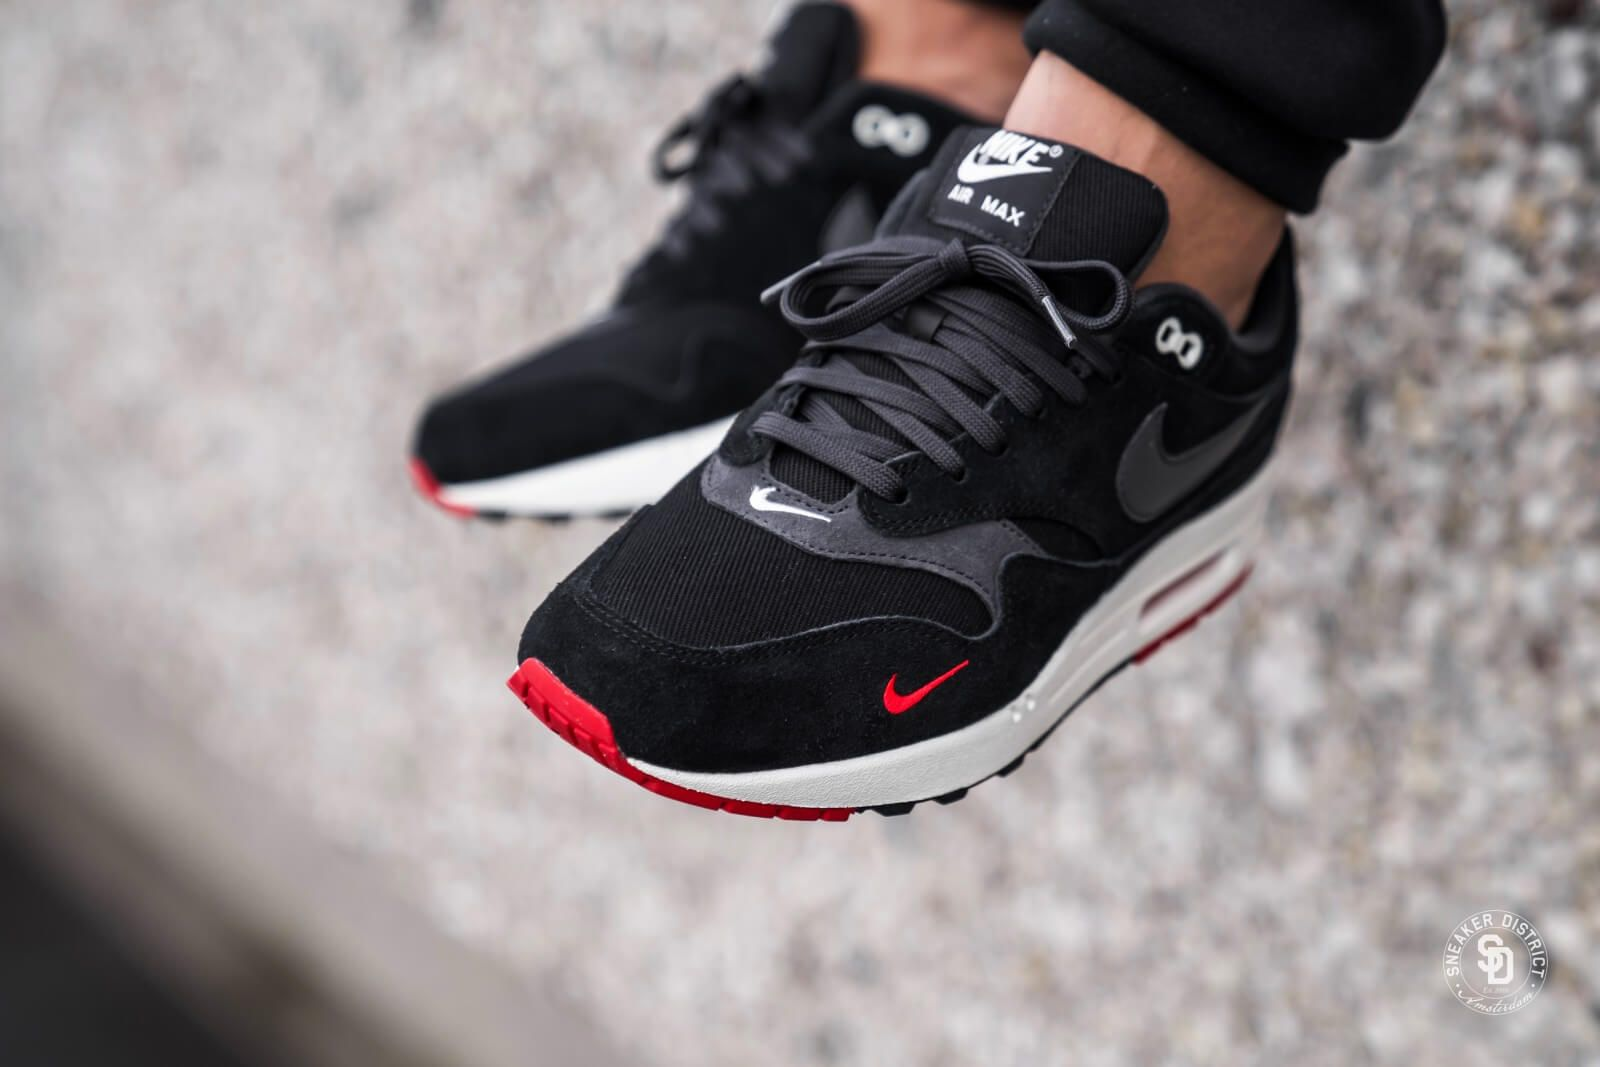 71dc6b243e17 Nike Air Max 1 Premium Mini Swoosh Black University Red - 875844-007 ...